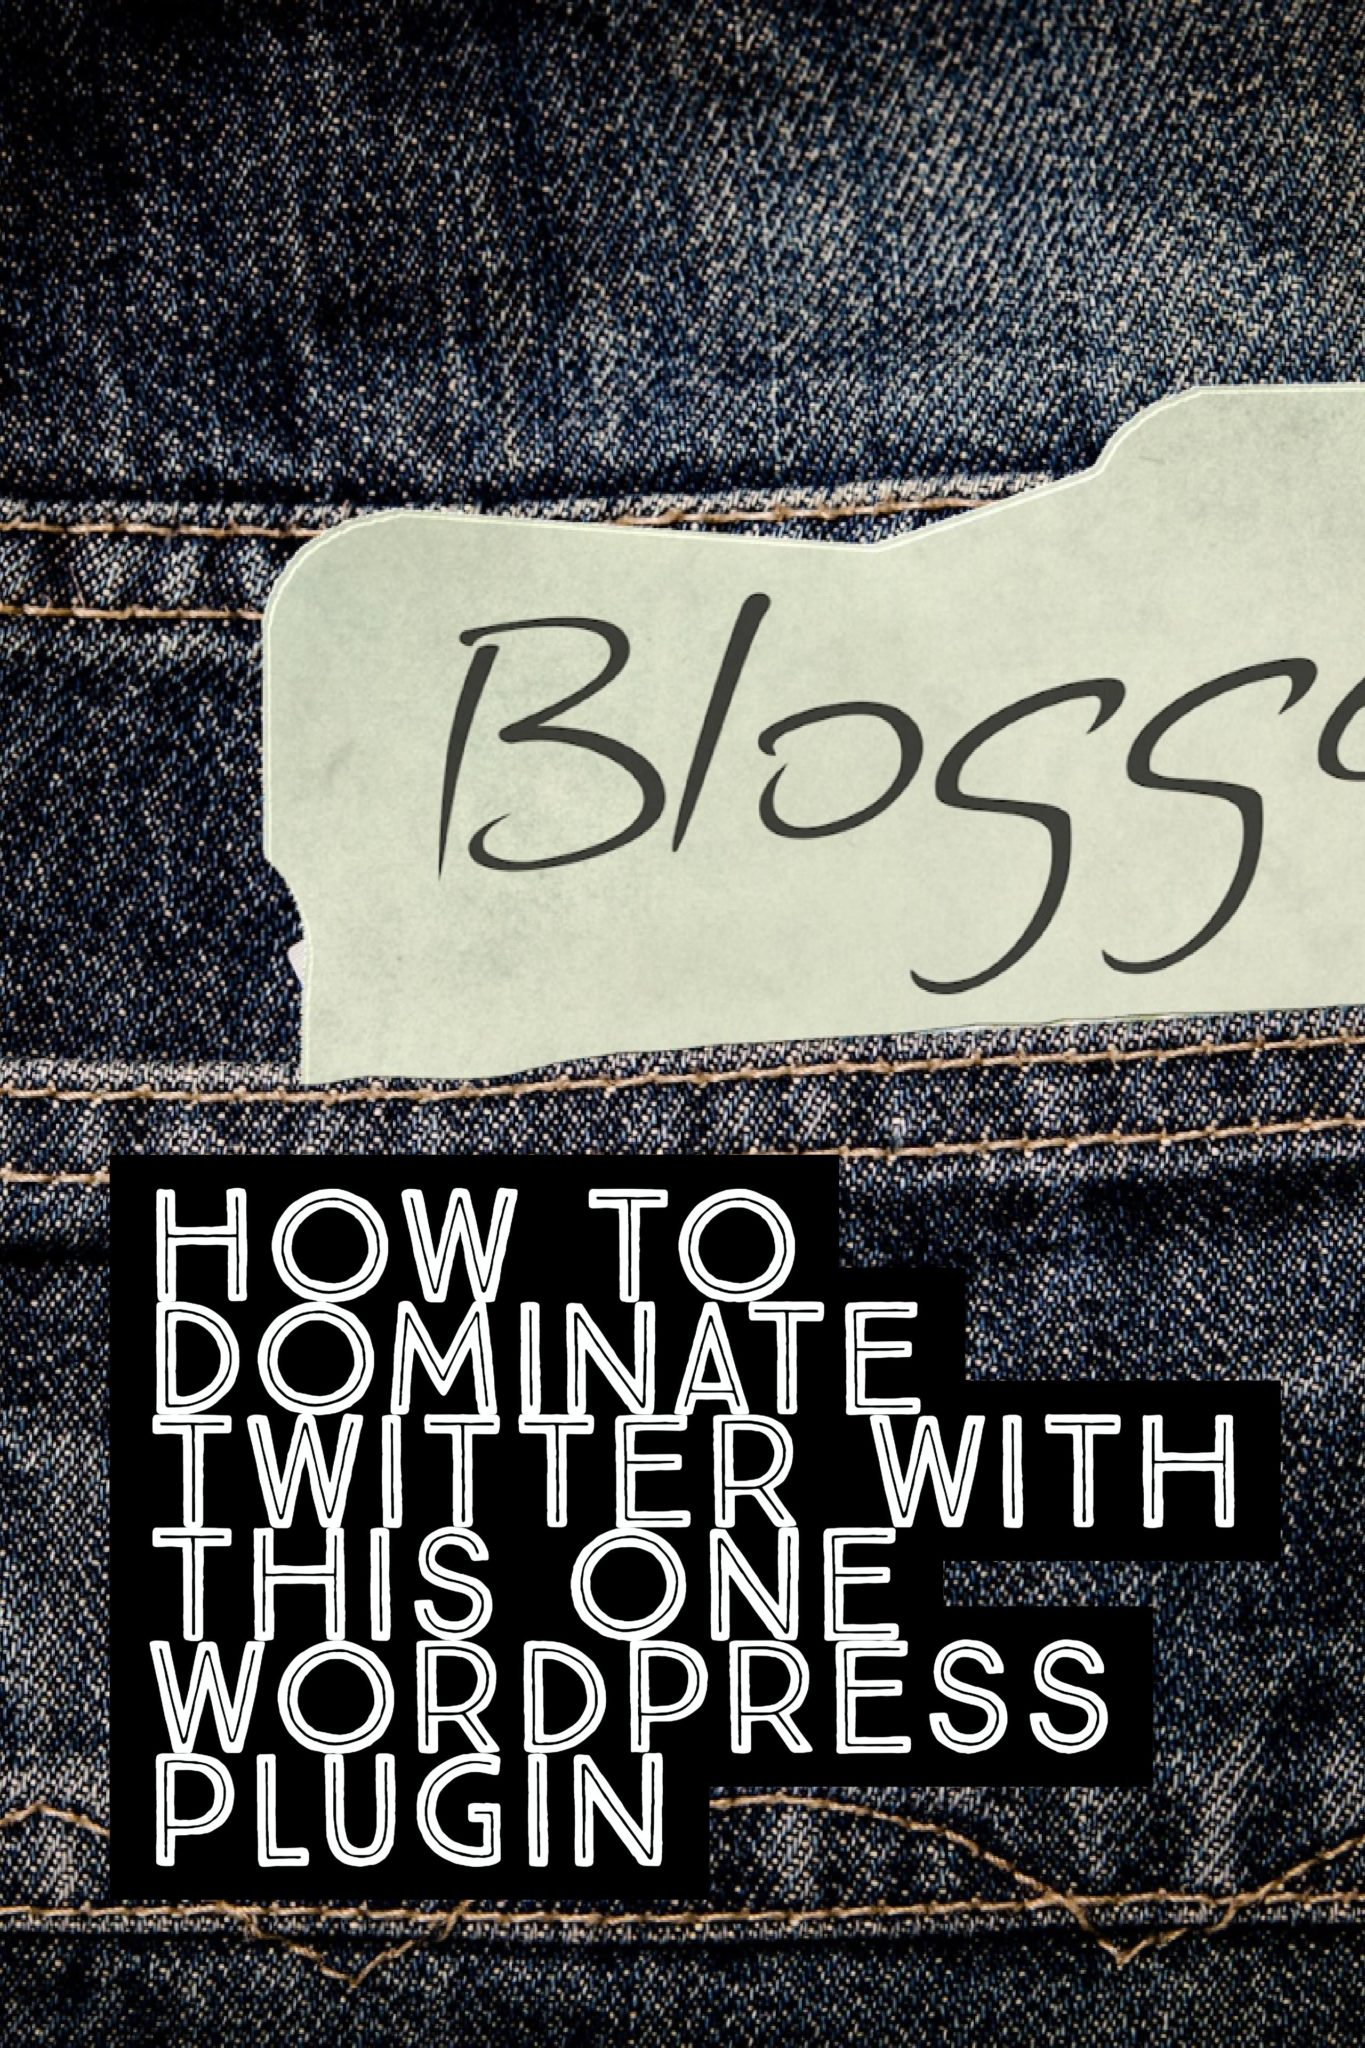 Twitter can be hard these days for a blogger. But with this one WordPress Plugin, you'll be able to dominate Twitter and get more blog shares! Click through to read more. :)